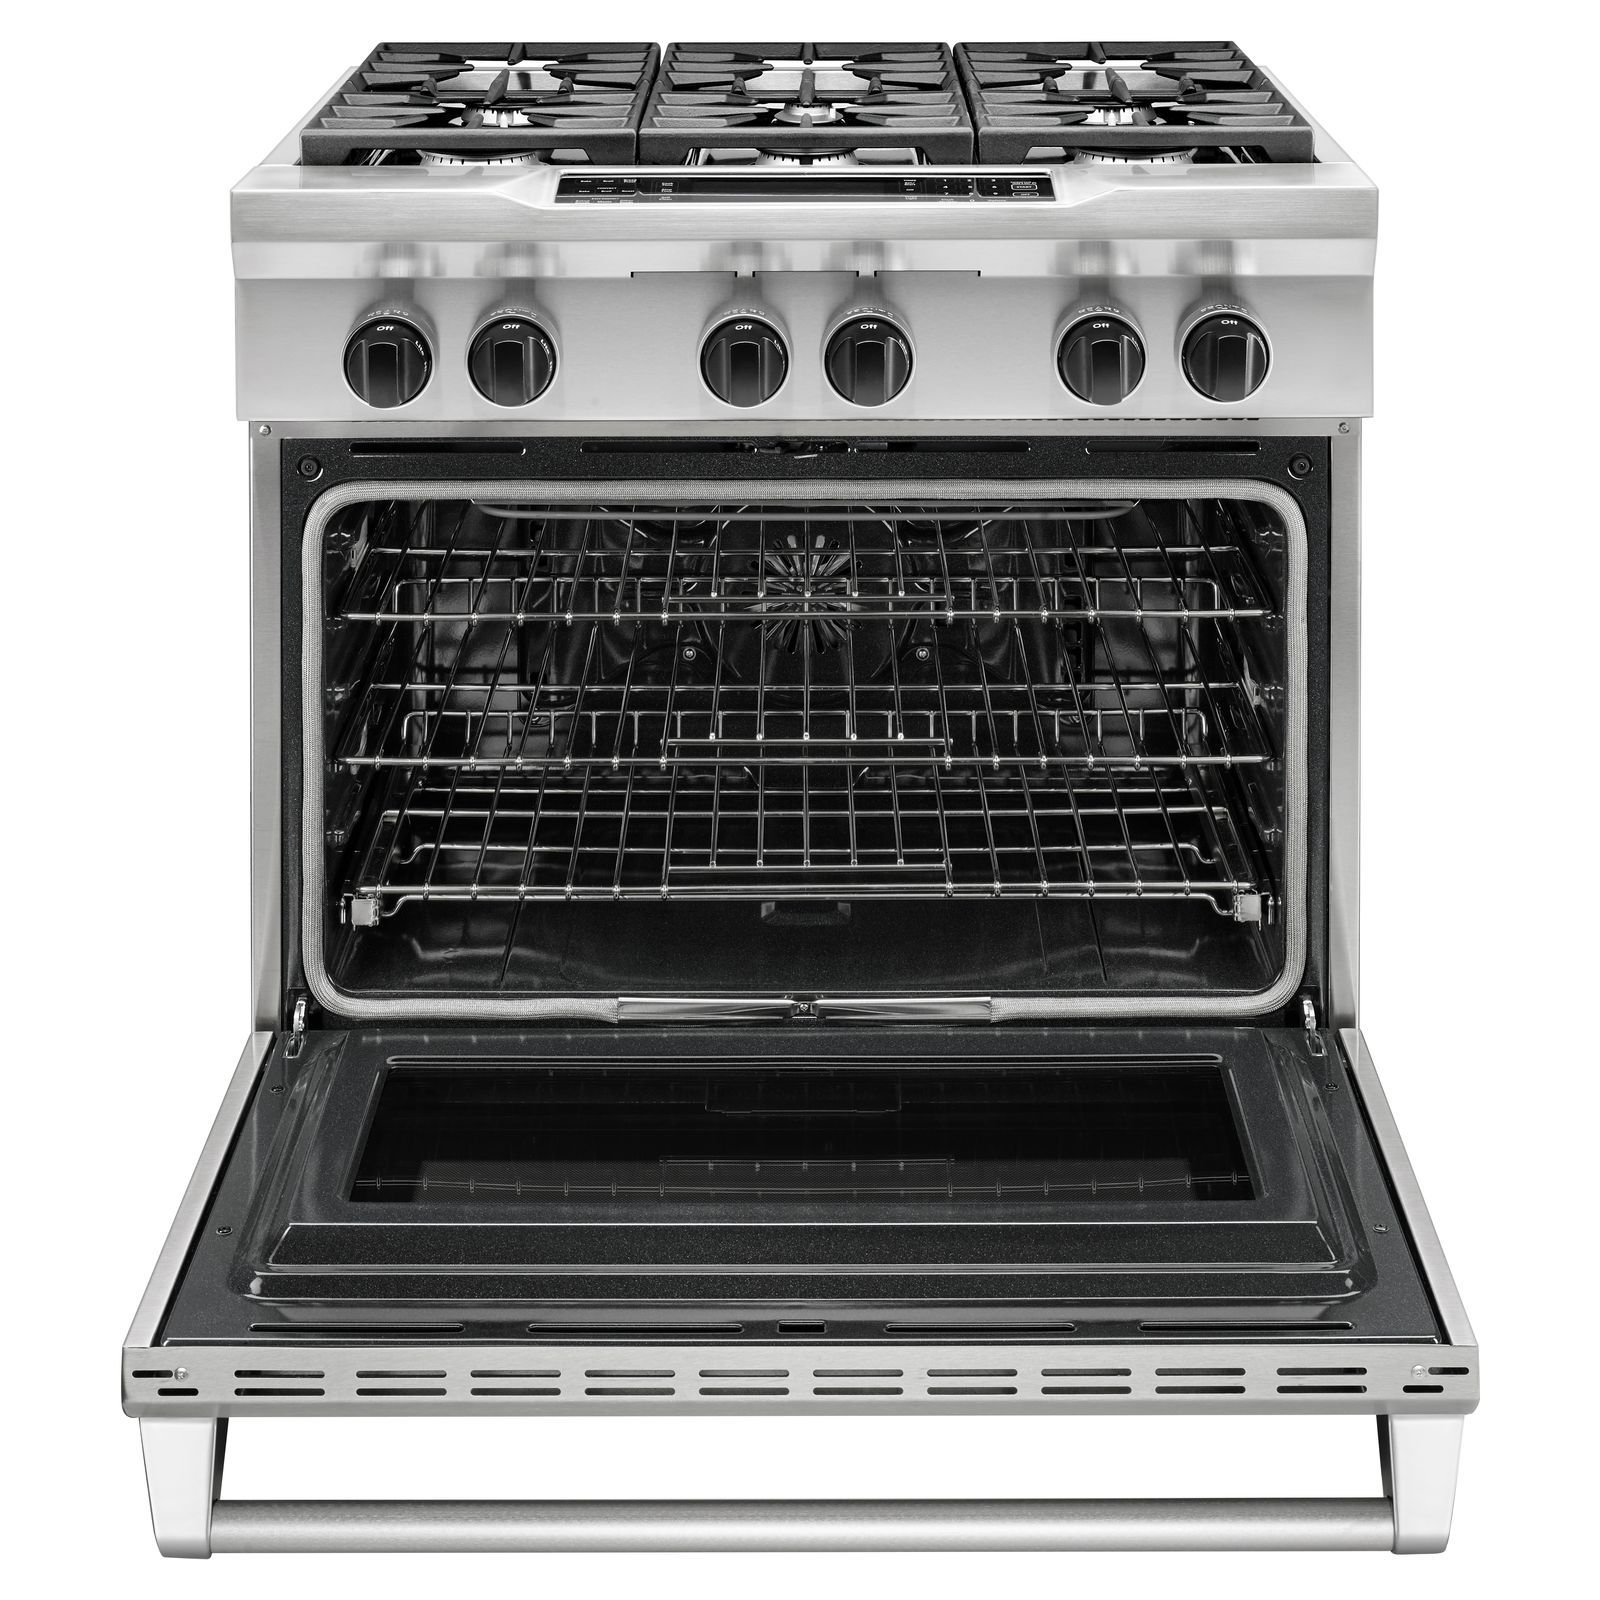 KitchenAid KDRS467VSS Pro-Style 5.1 cu. ft. Dual Fuel Range - Stainless Steel